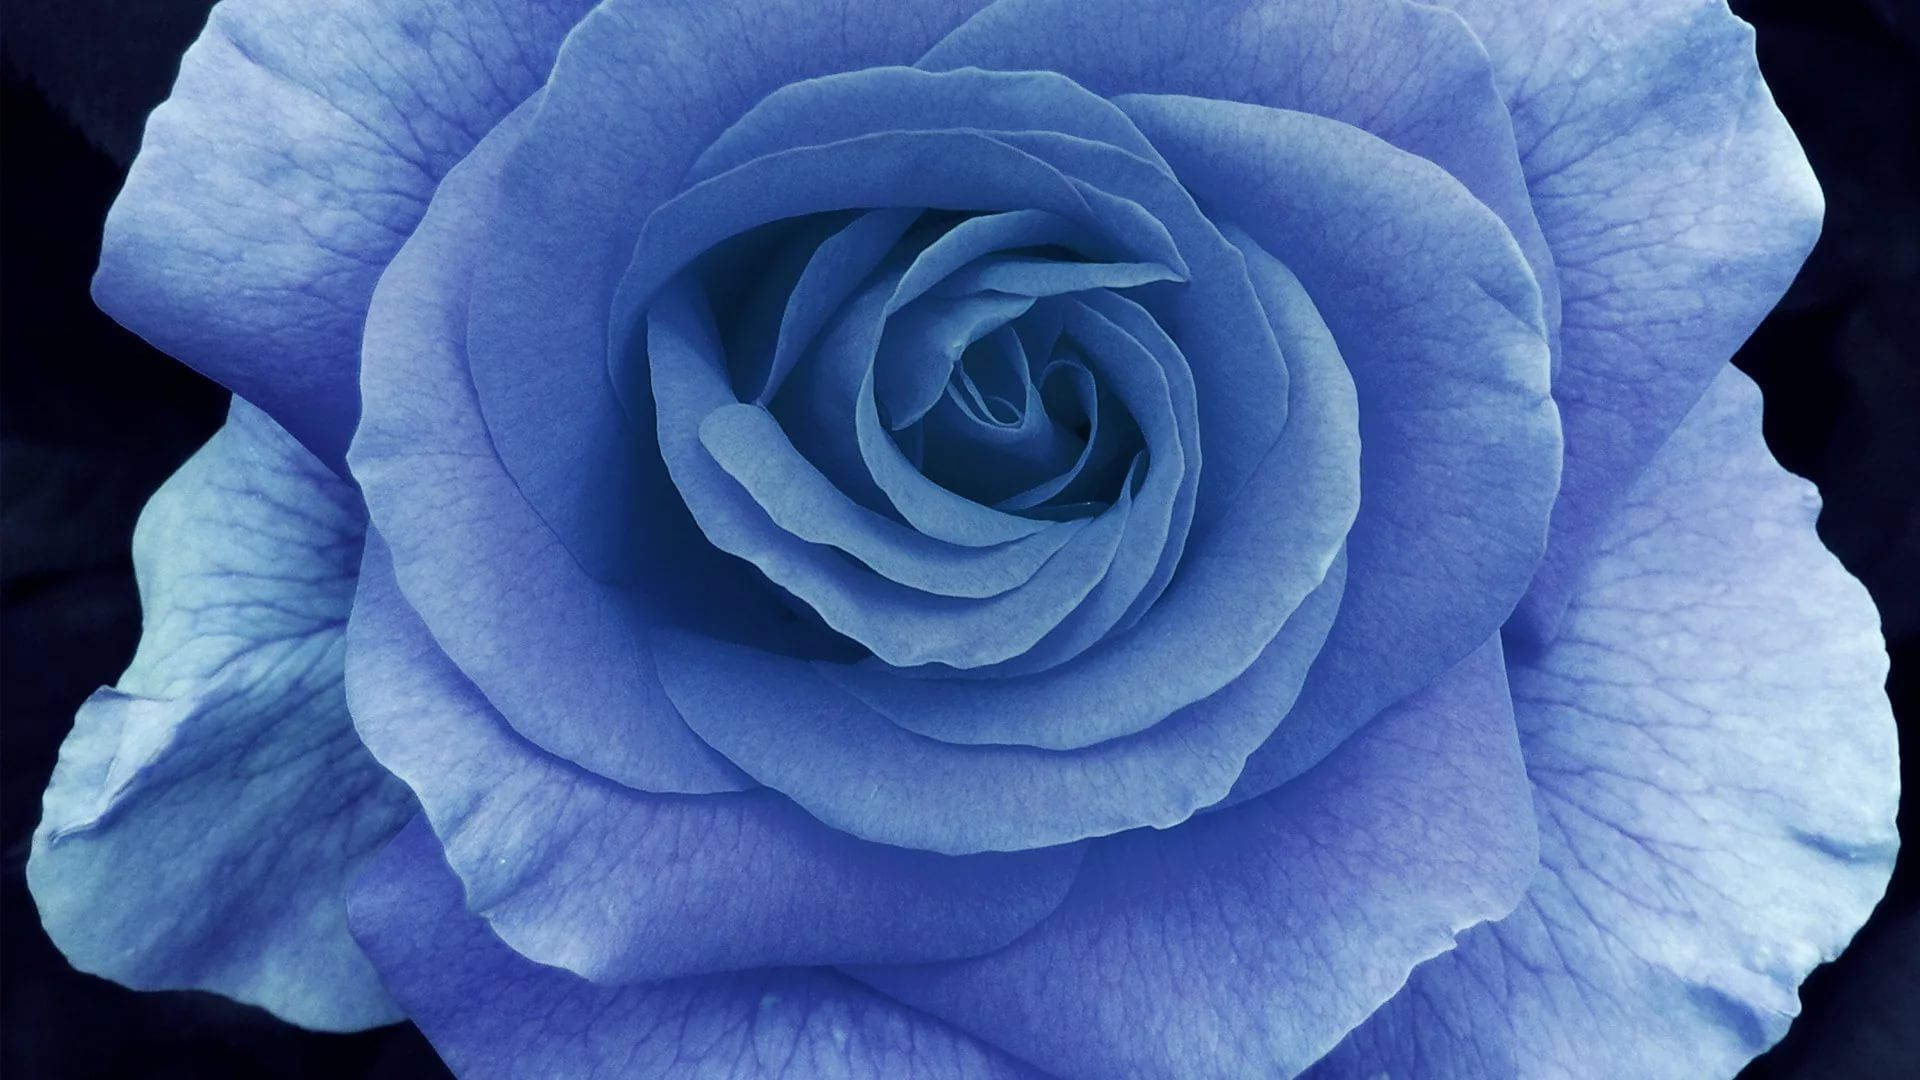 Blue Rose 1080p Wallpaper